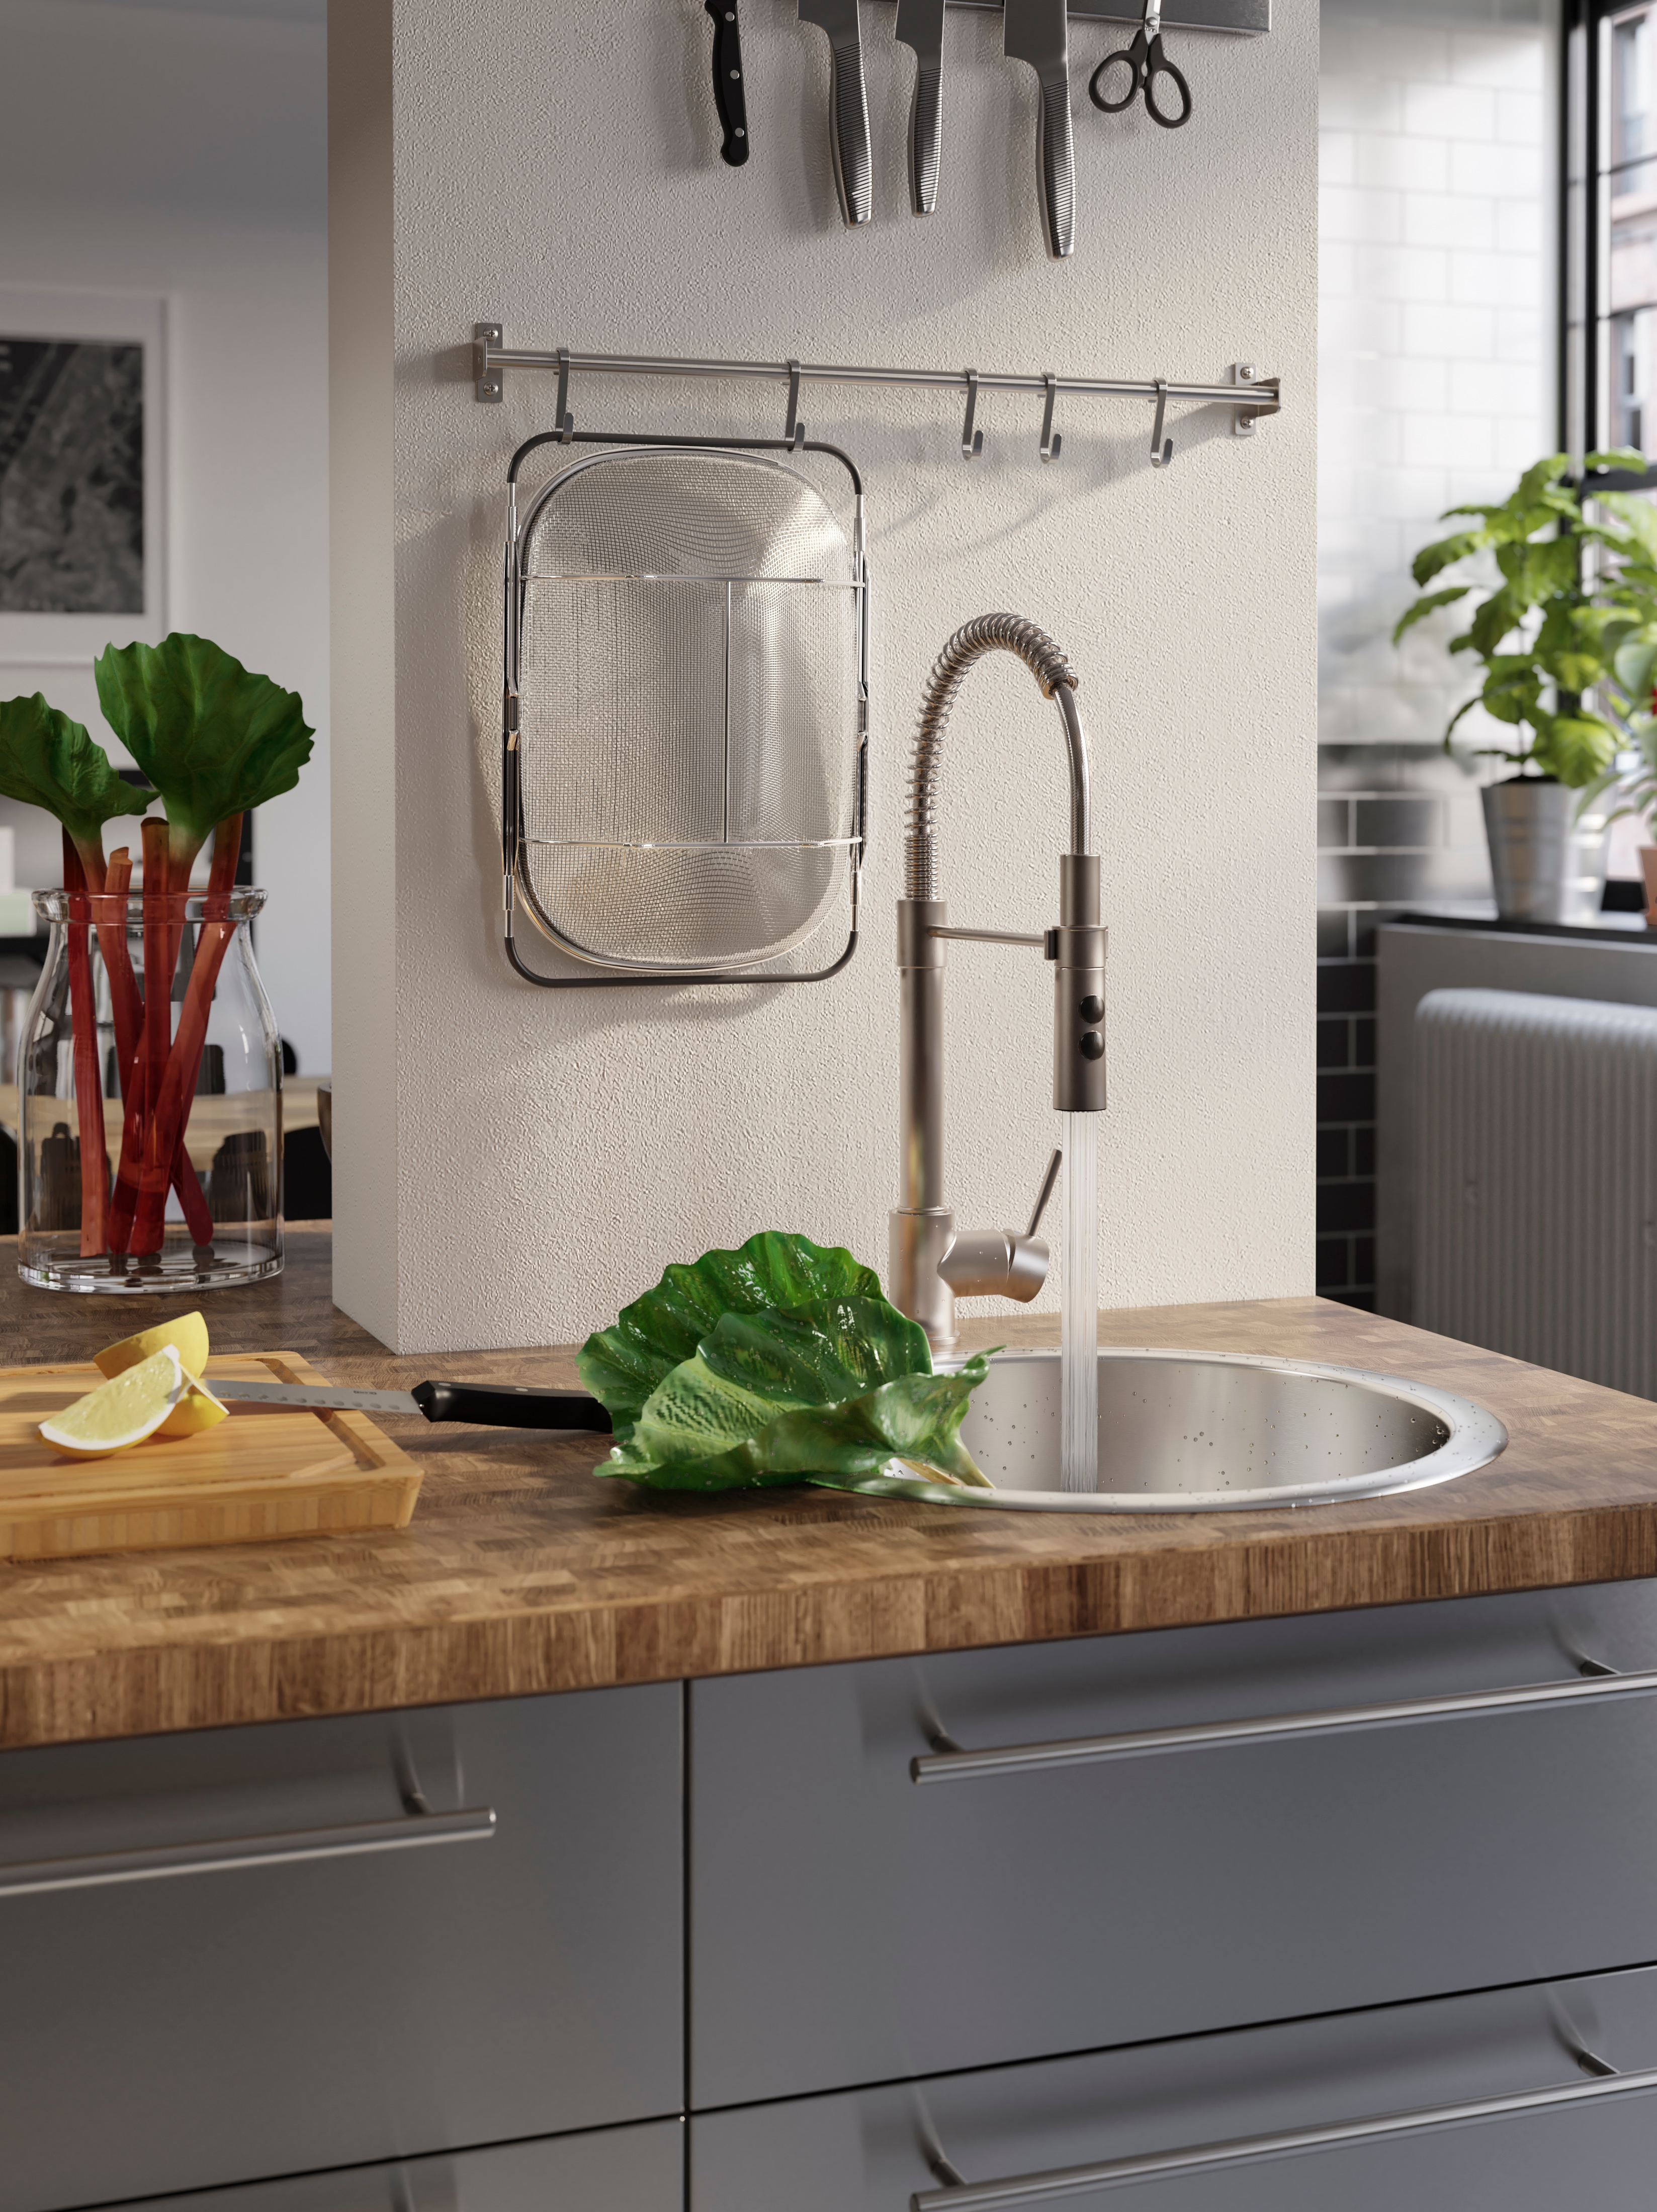 A wooden worktop with an inset sink and a VIMMERN mixer tap that's turned on to wash rhubarb placed in the sink.